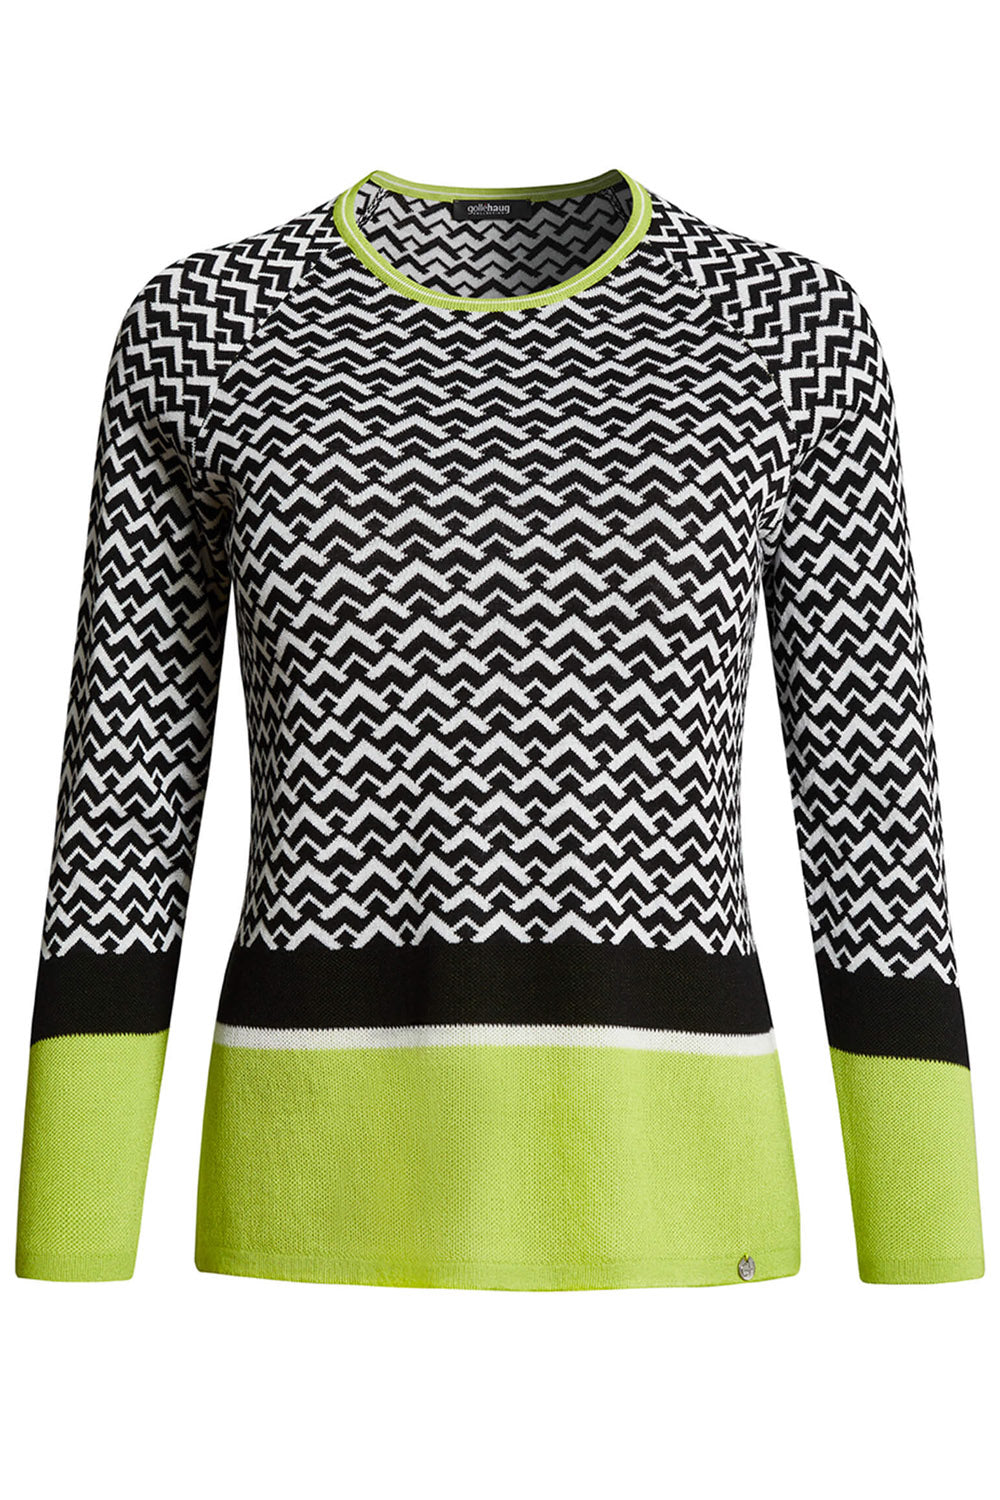 Gollehaug Pullover - Style 02021-11037